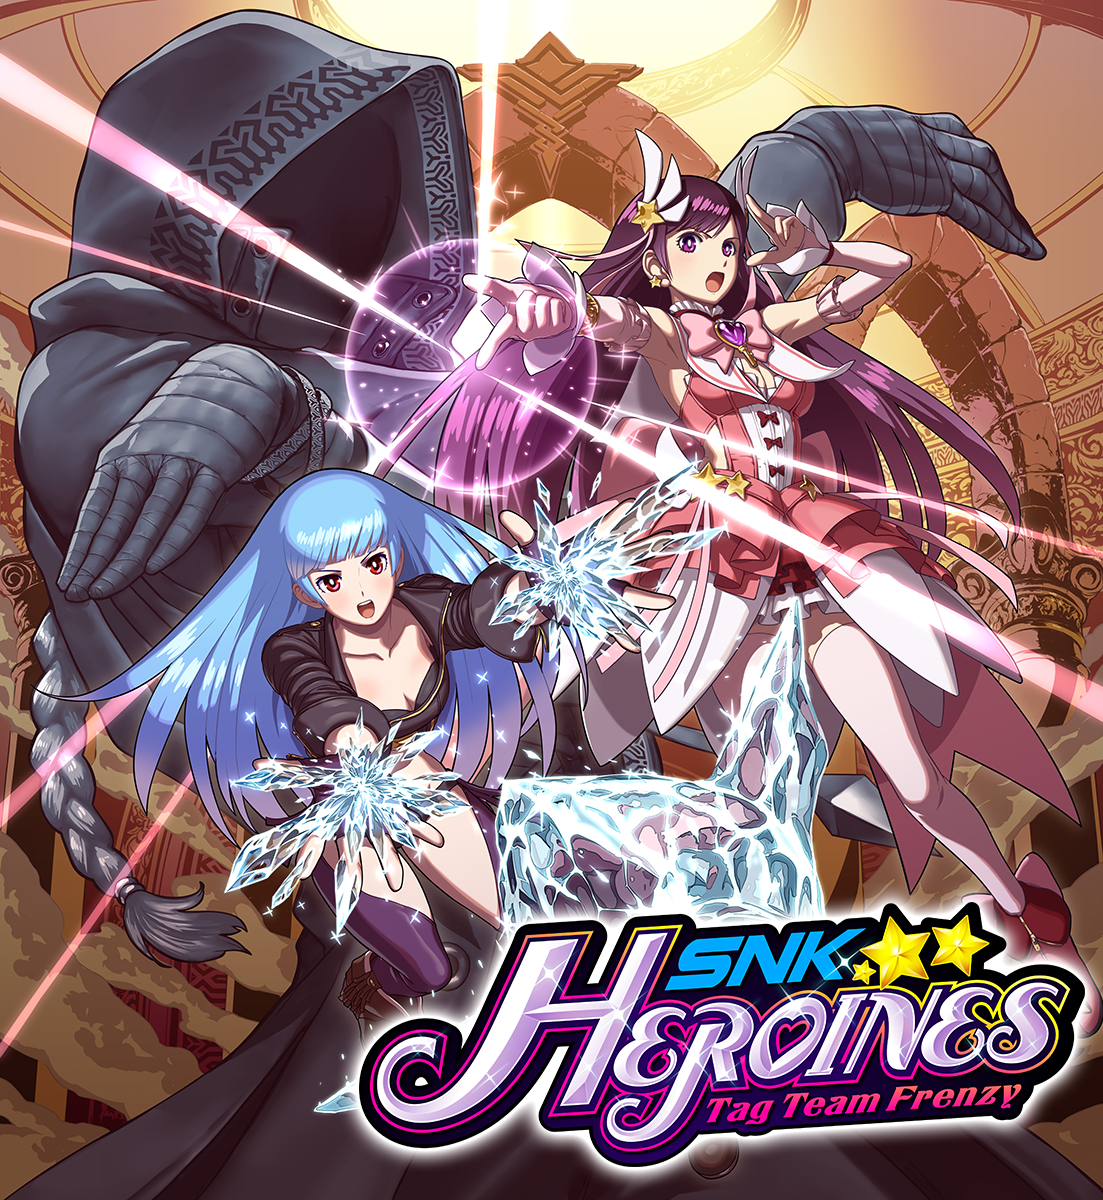 snk-heroines-tag-team-frenzy-logo-2